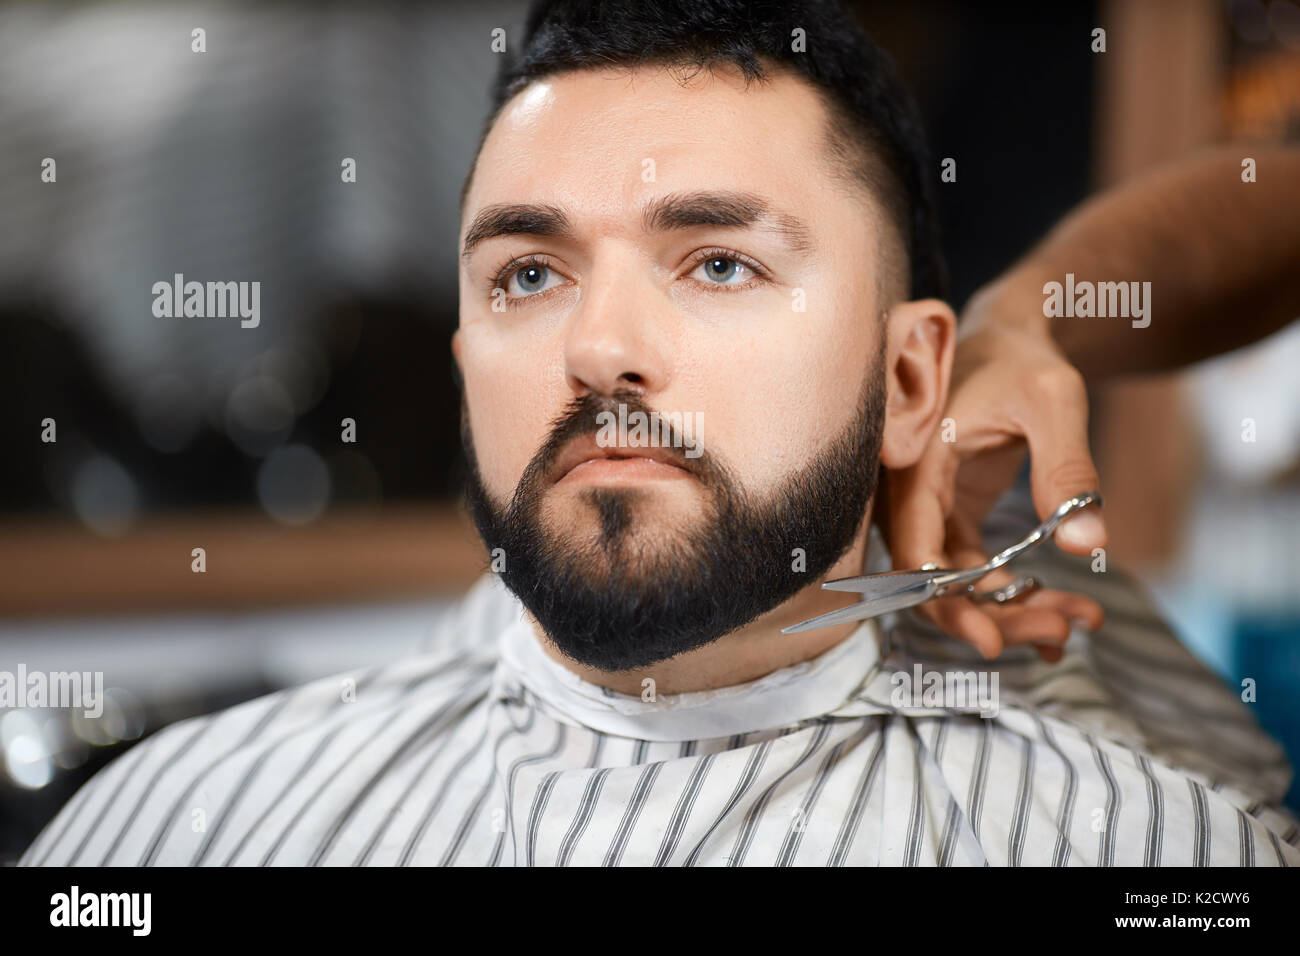 Hairdresser cutting bread with scissors for brunet client. - Stock Image